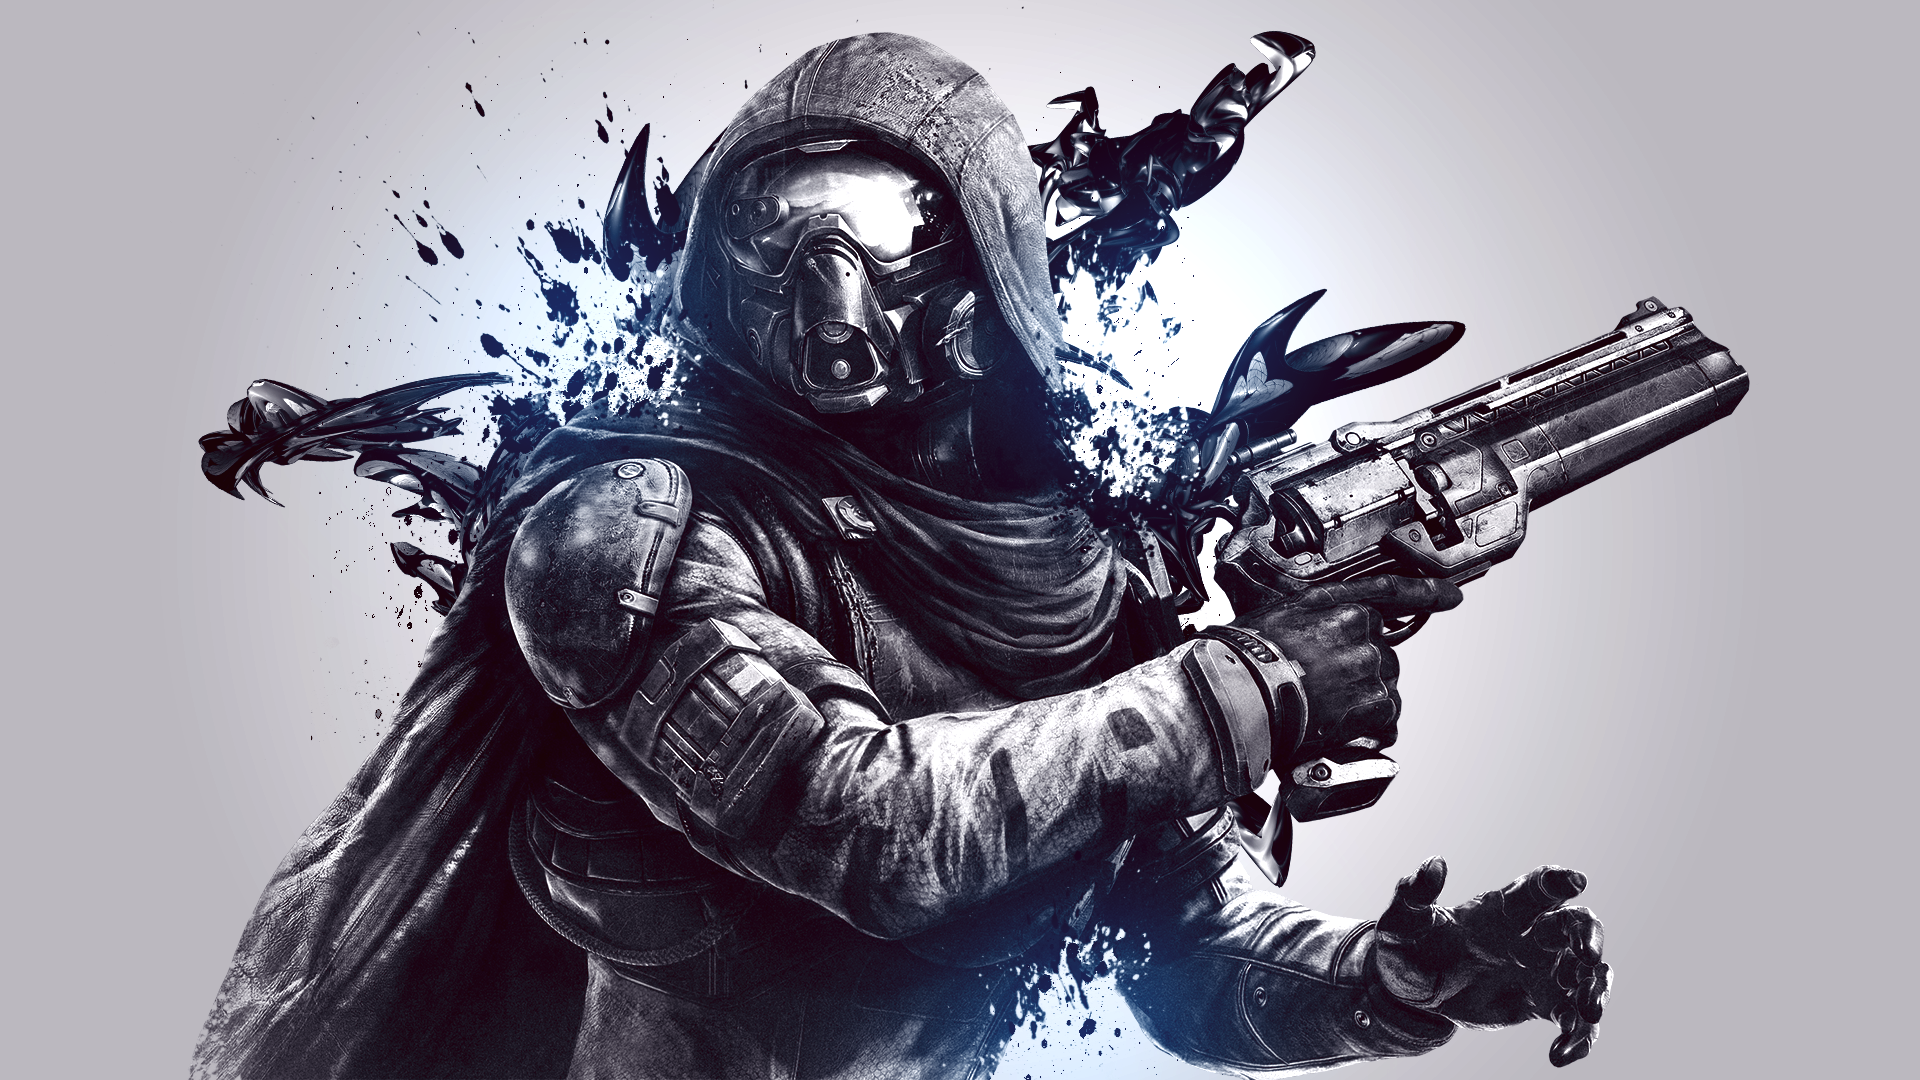 Hunter Wallpaper Destiny - WallpaperSafari